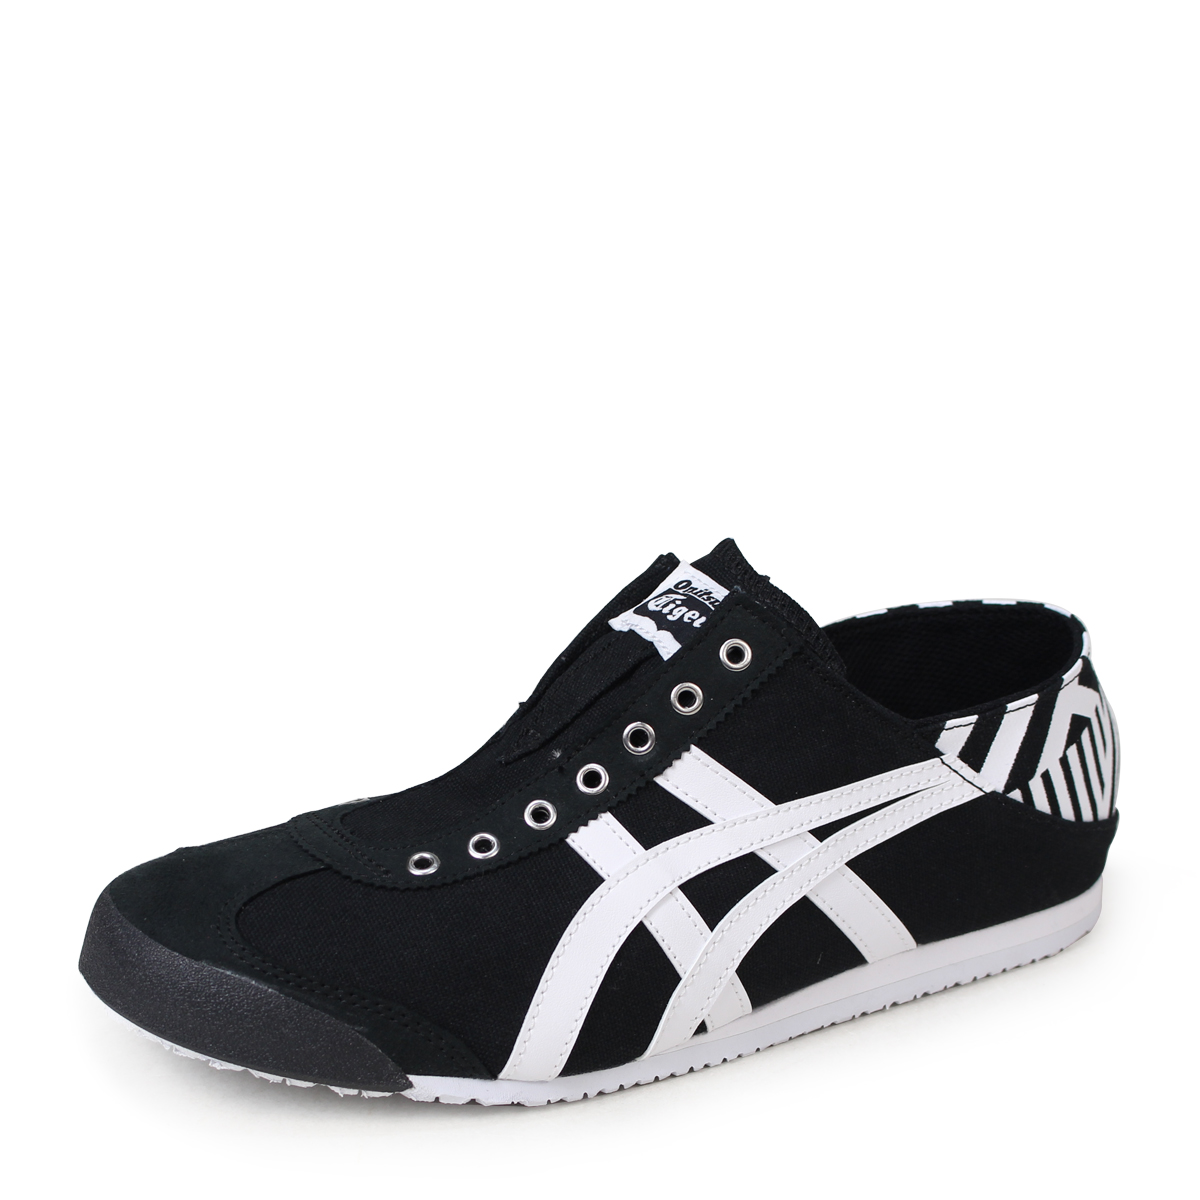 new style b2b12 e824c Onitsuka Tiger MEXICO 66 PARATY Onitsuka tiger Mexico 66 slip-ons men gap  Dis sneakers TH342N-9001 black [184]